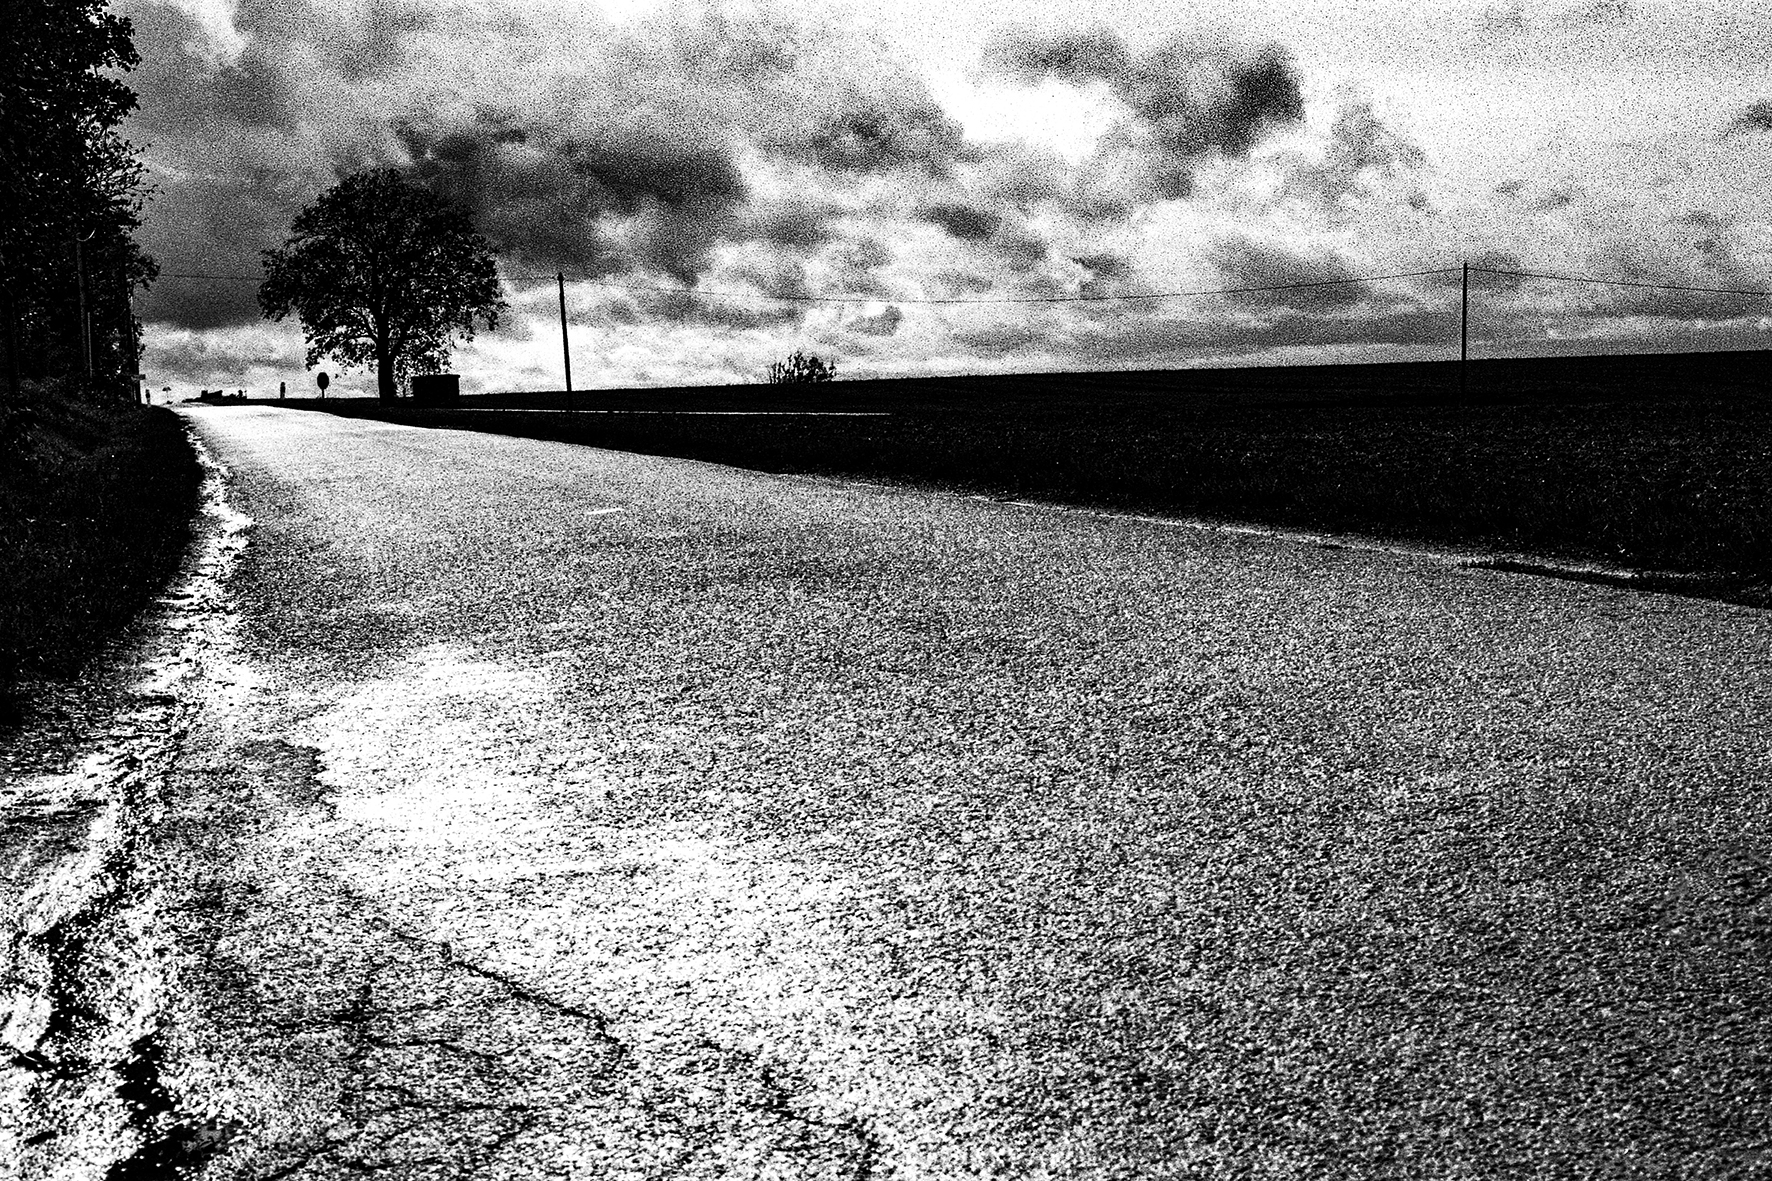 Photographe : Taking the country roads n°18